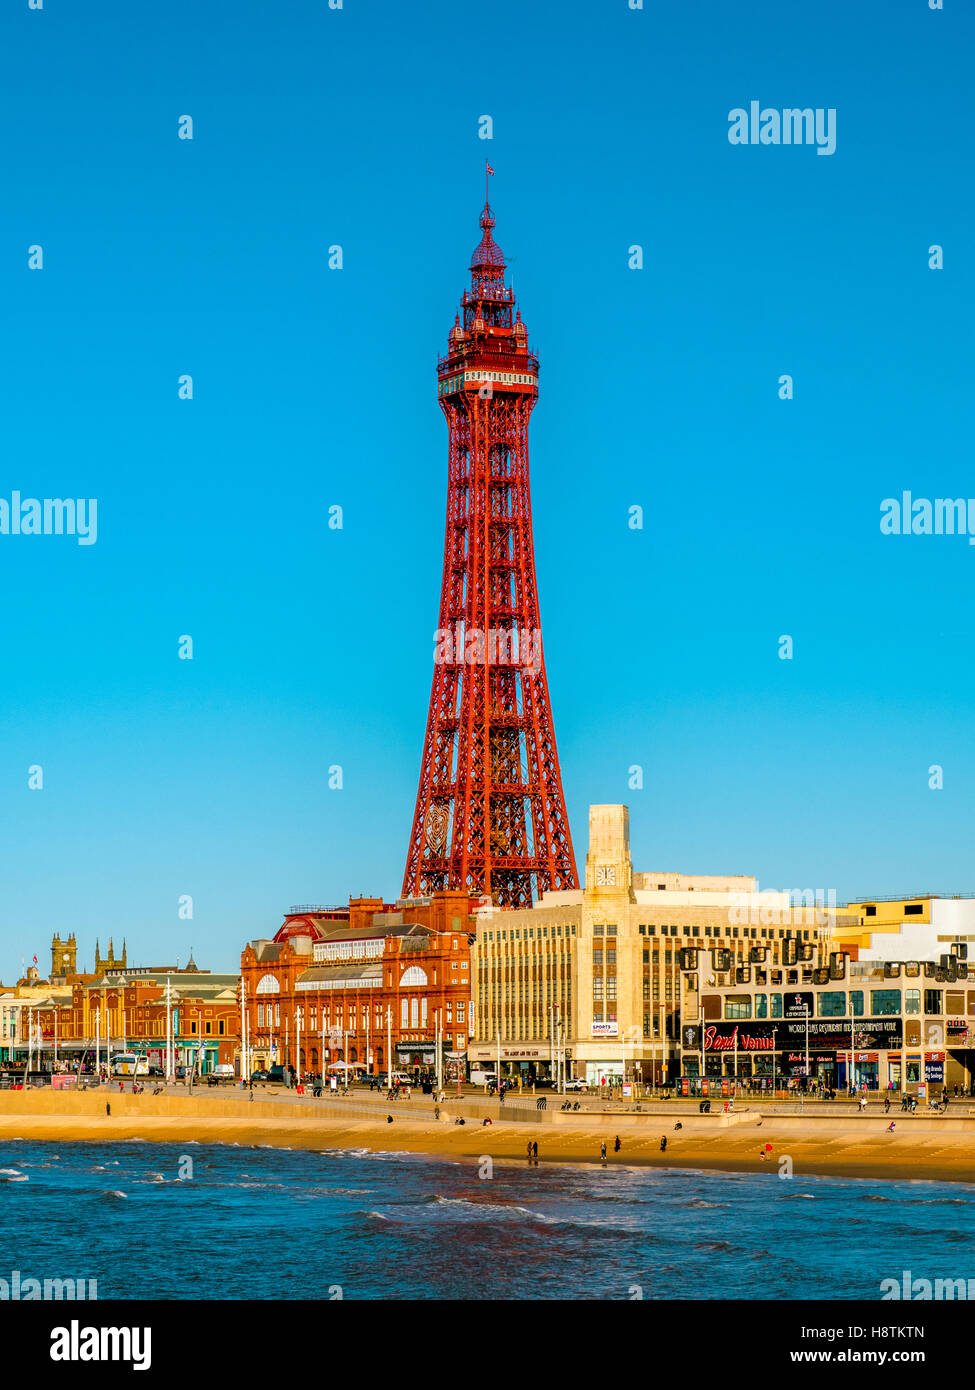 Blackpool Tower and Promenade, Blackpool, Lancashire, UK. Stock Photo